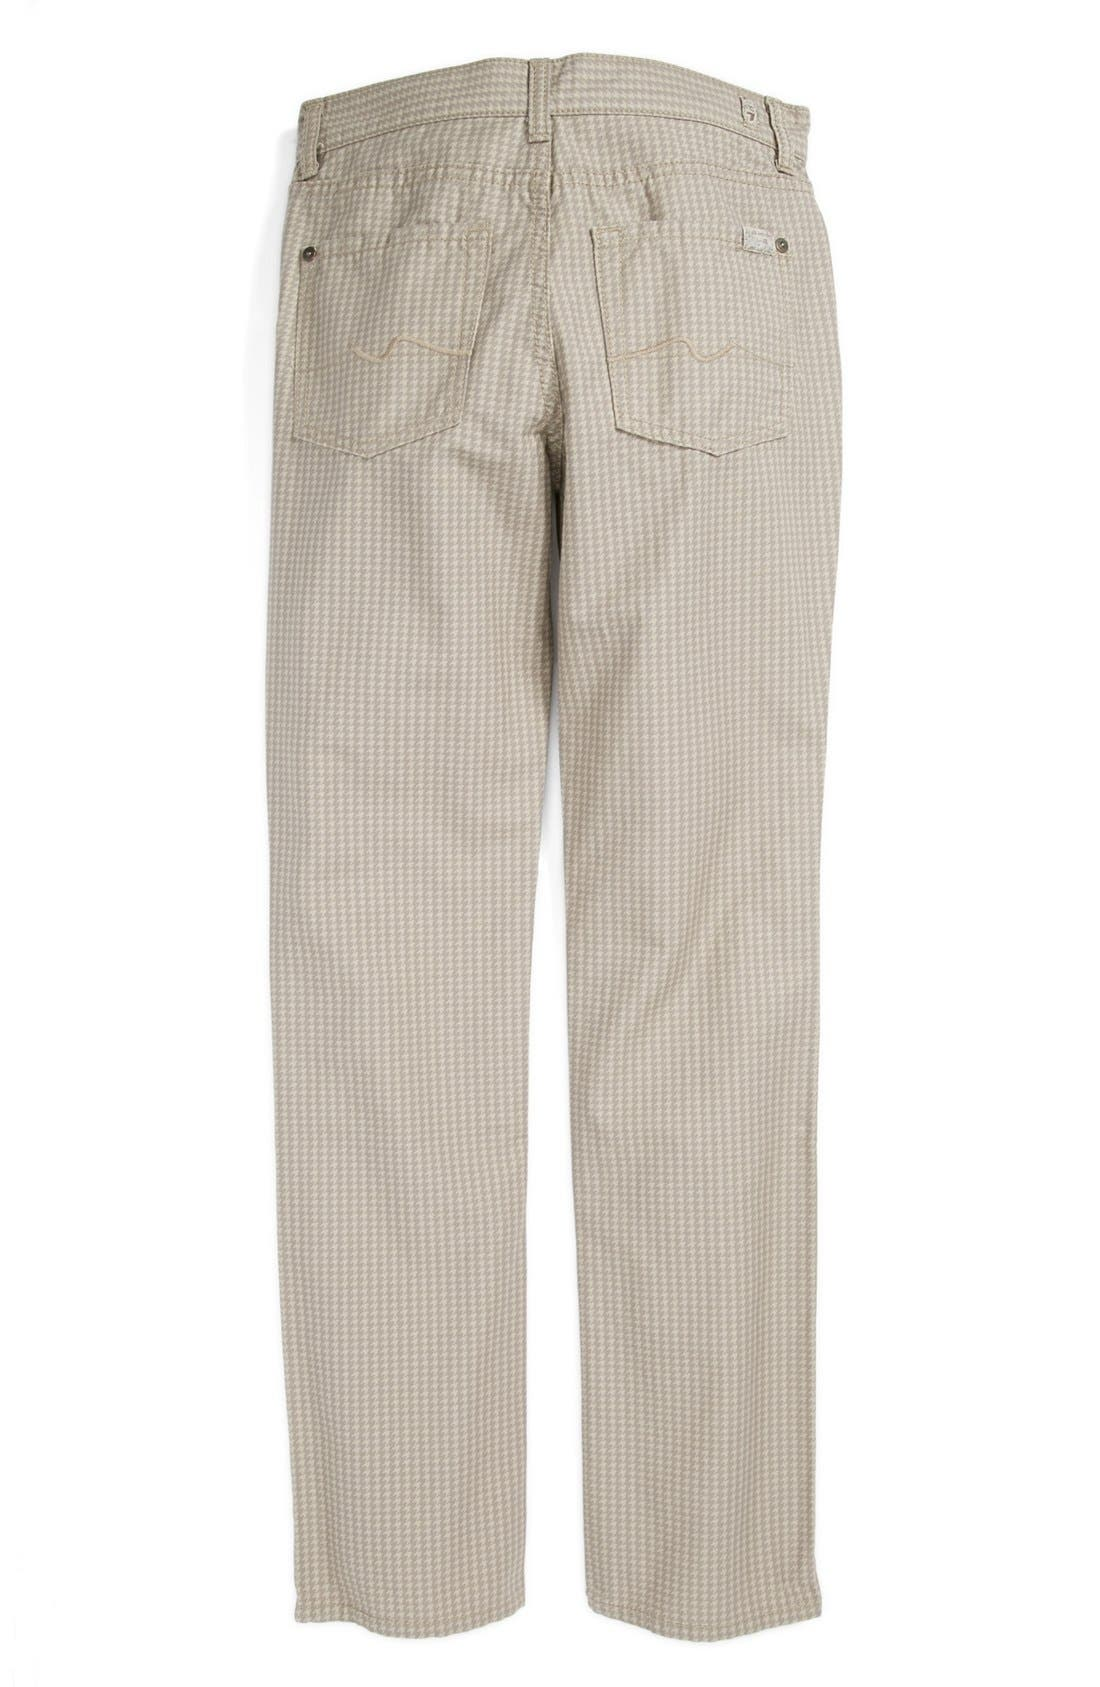 Alternate Image 1 Selected - 7 For All Mankind® 'The Straight' Straight Leg Pants (Big Boys) (Online Only)